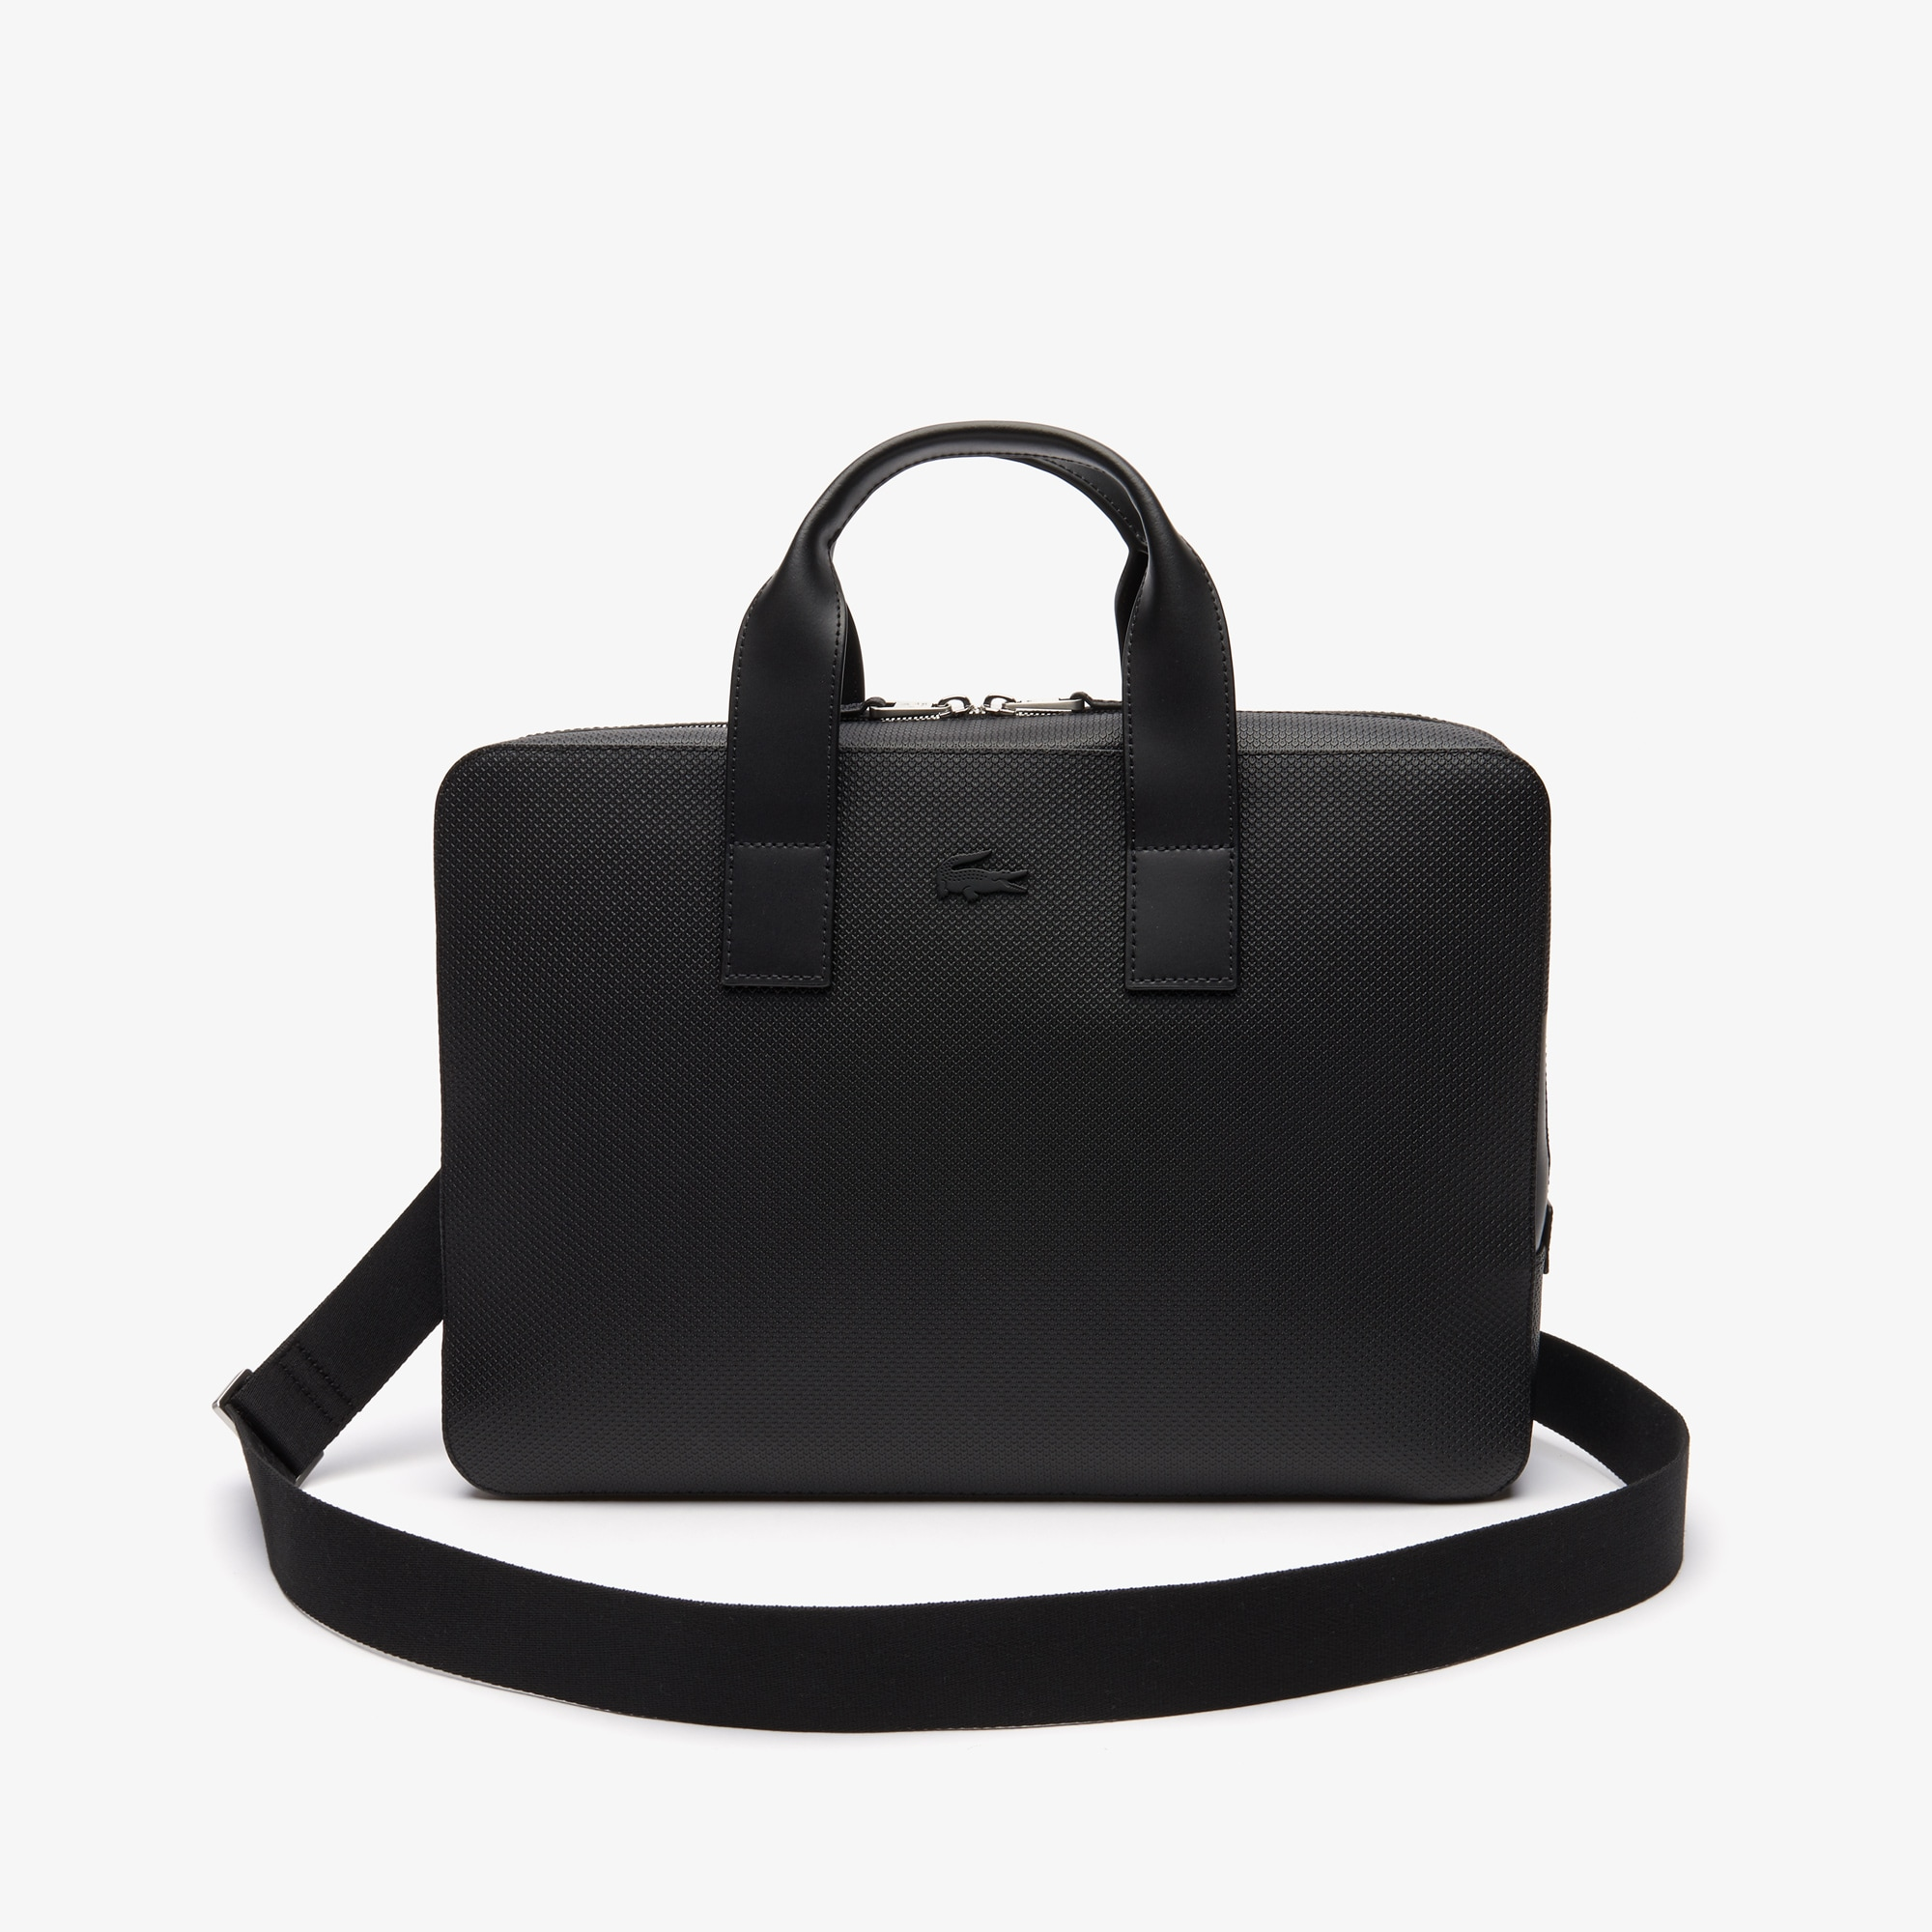 90c2061fbaf1d Men s Chantaco Matte Piqué Leather Computer Bag